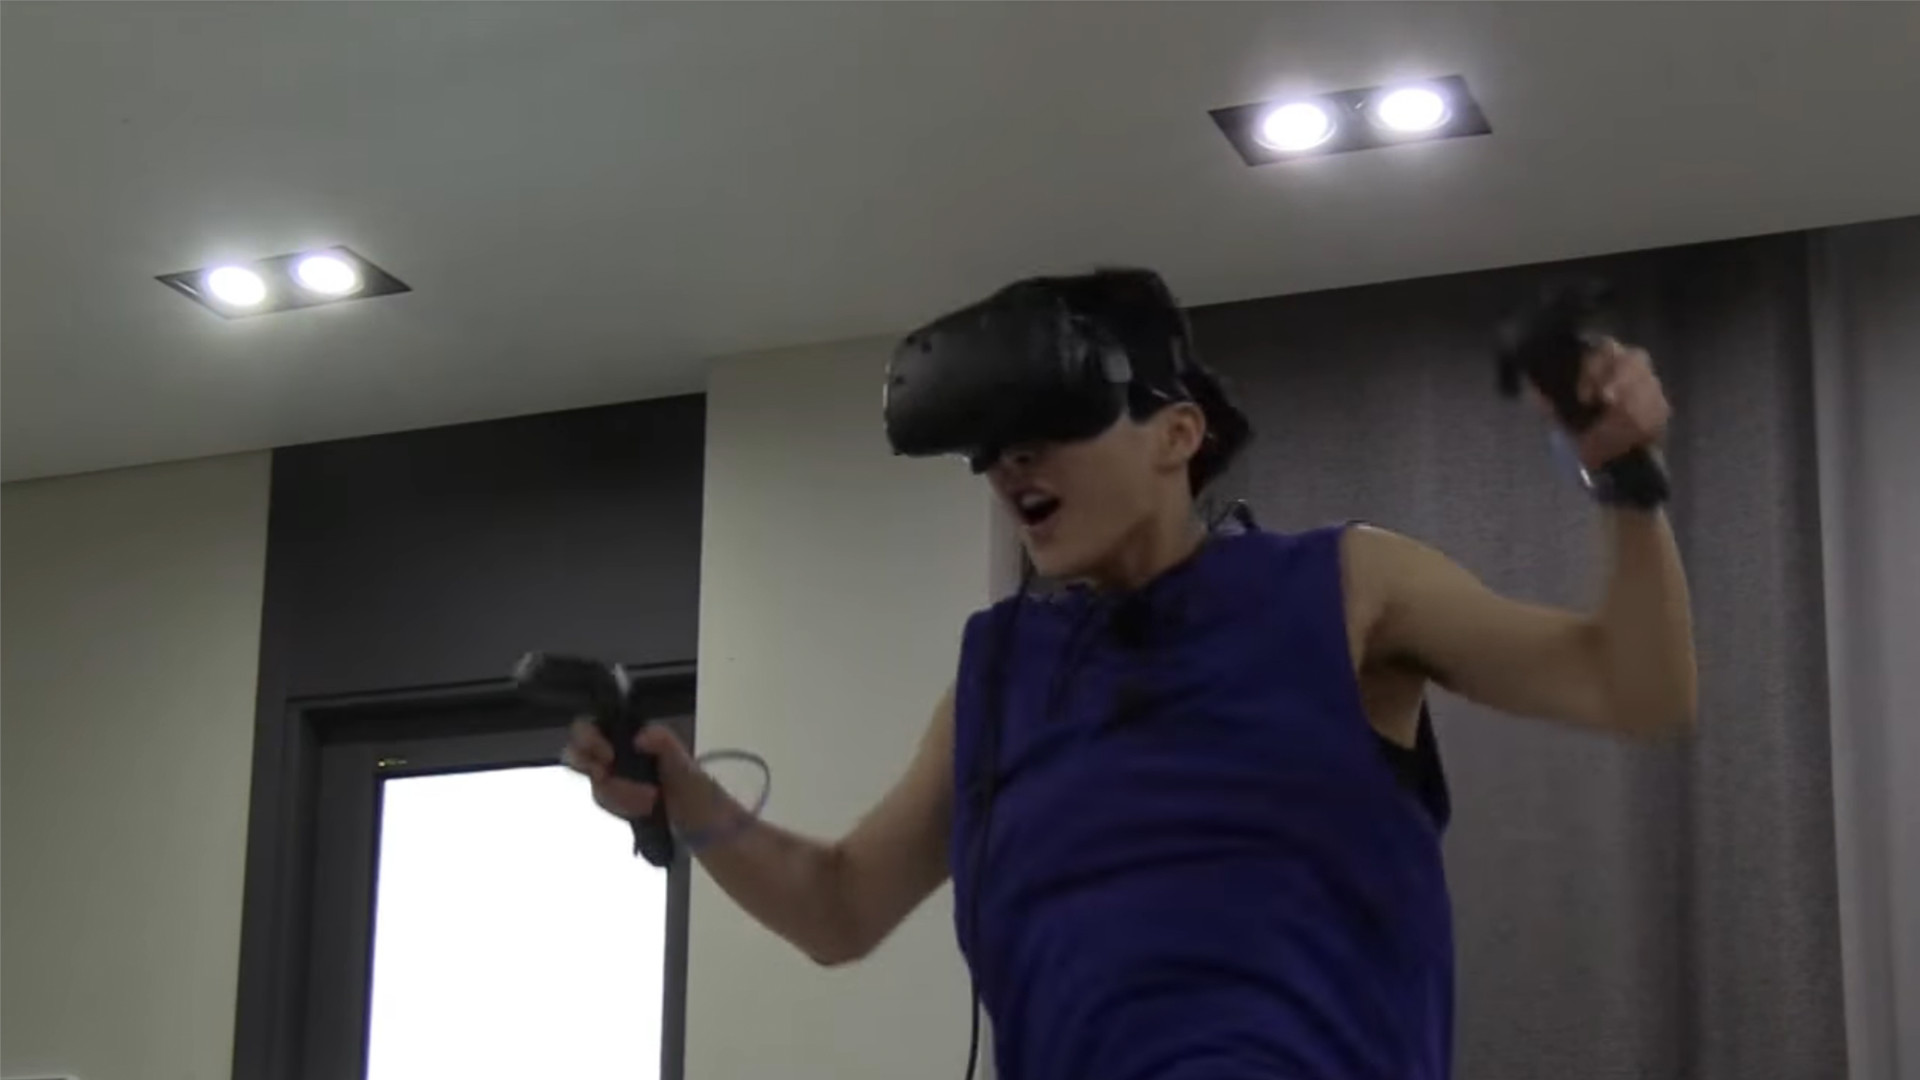 Xiumin From KPOP Band EXO Tries VR On HTC Vive